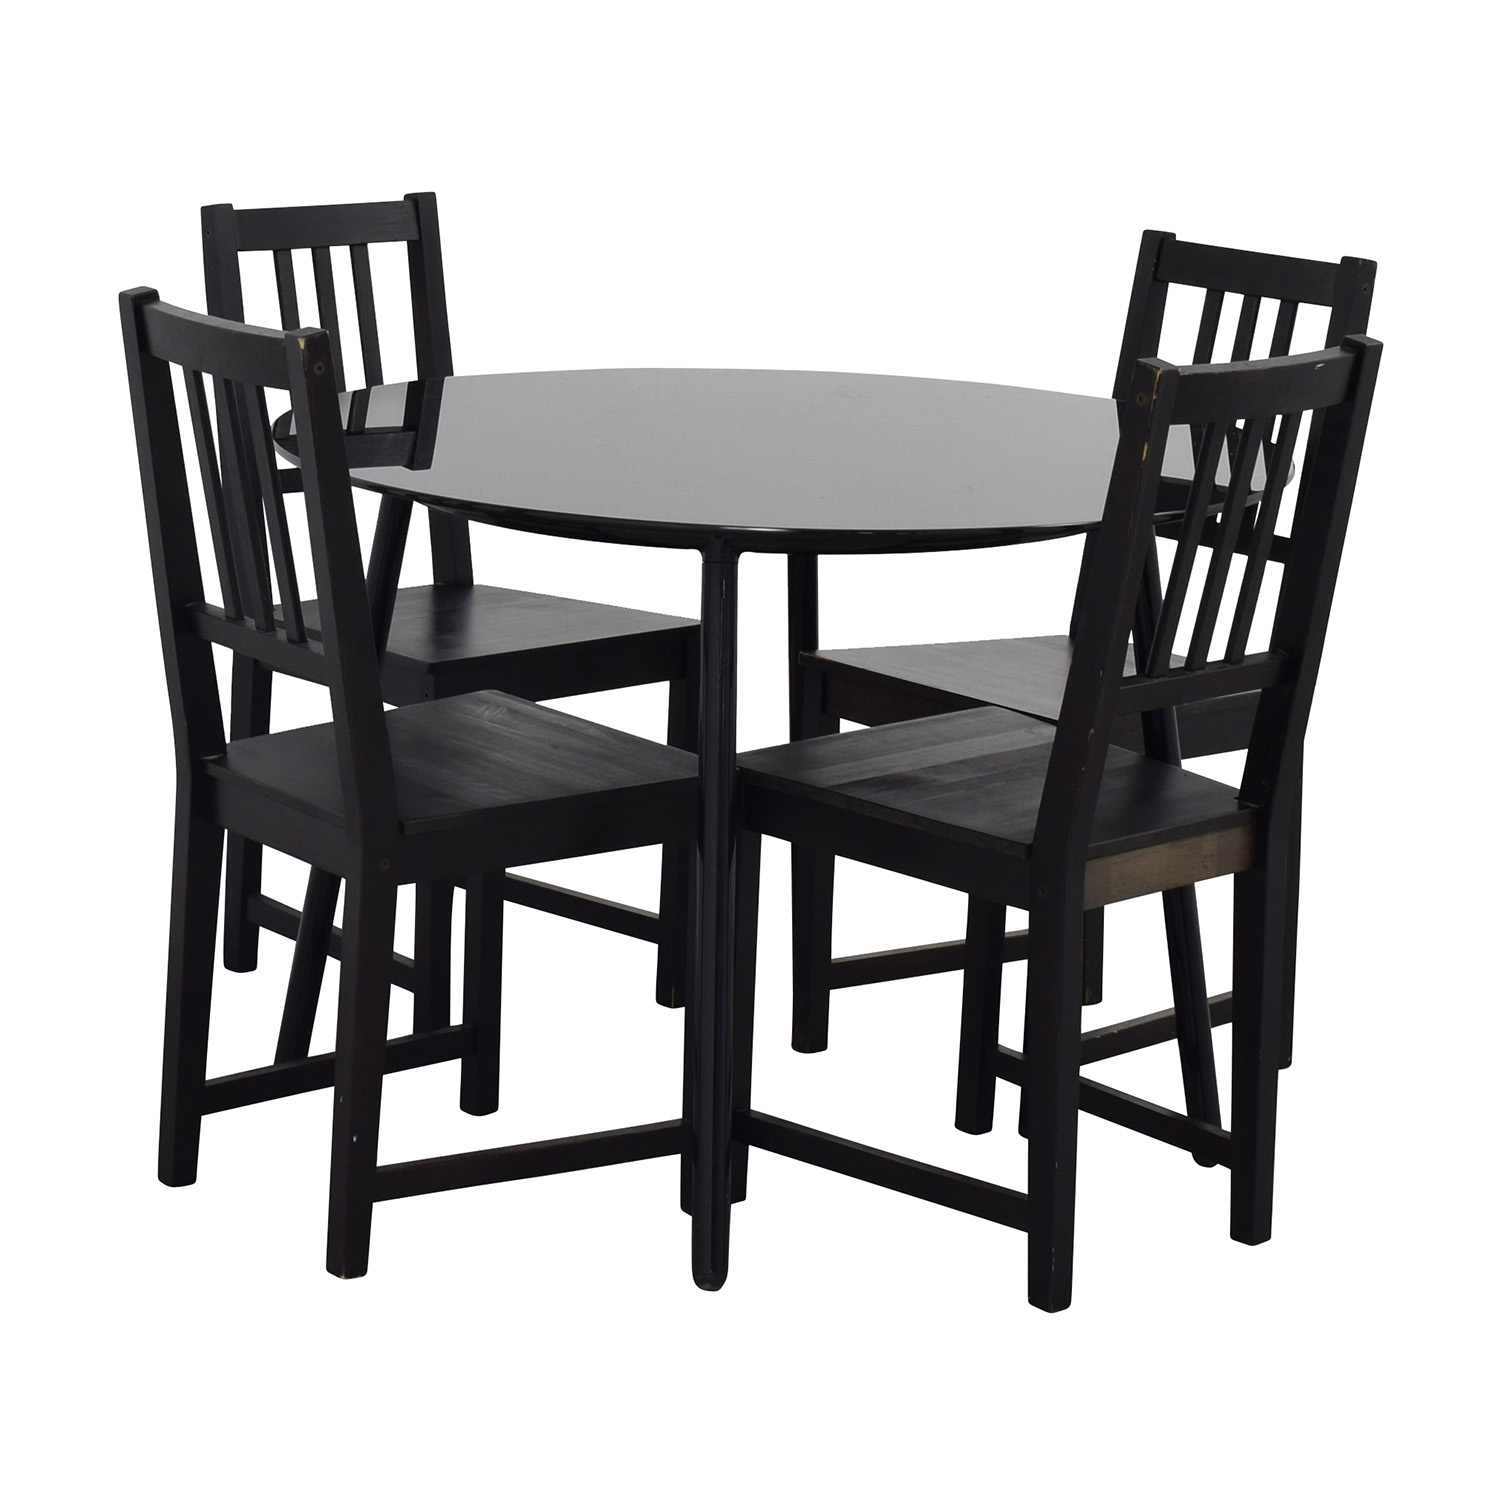 31 off ikea ikea glass and wood table and chairs tables for Ikea dining table and chairs set